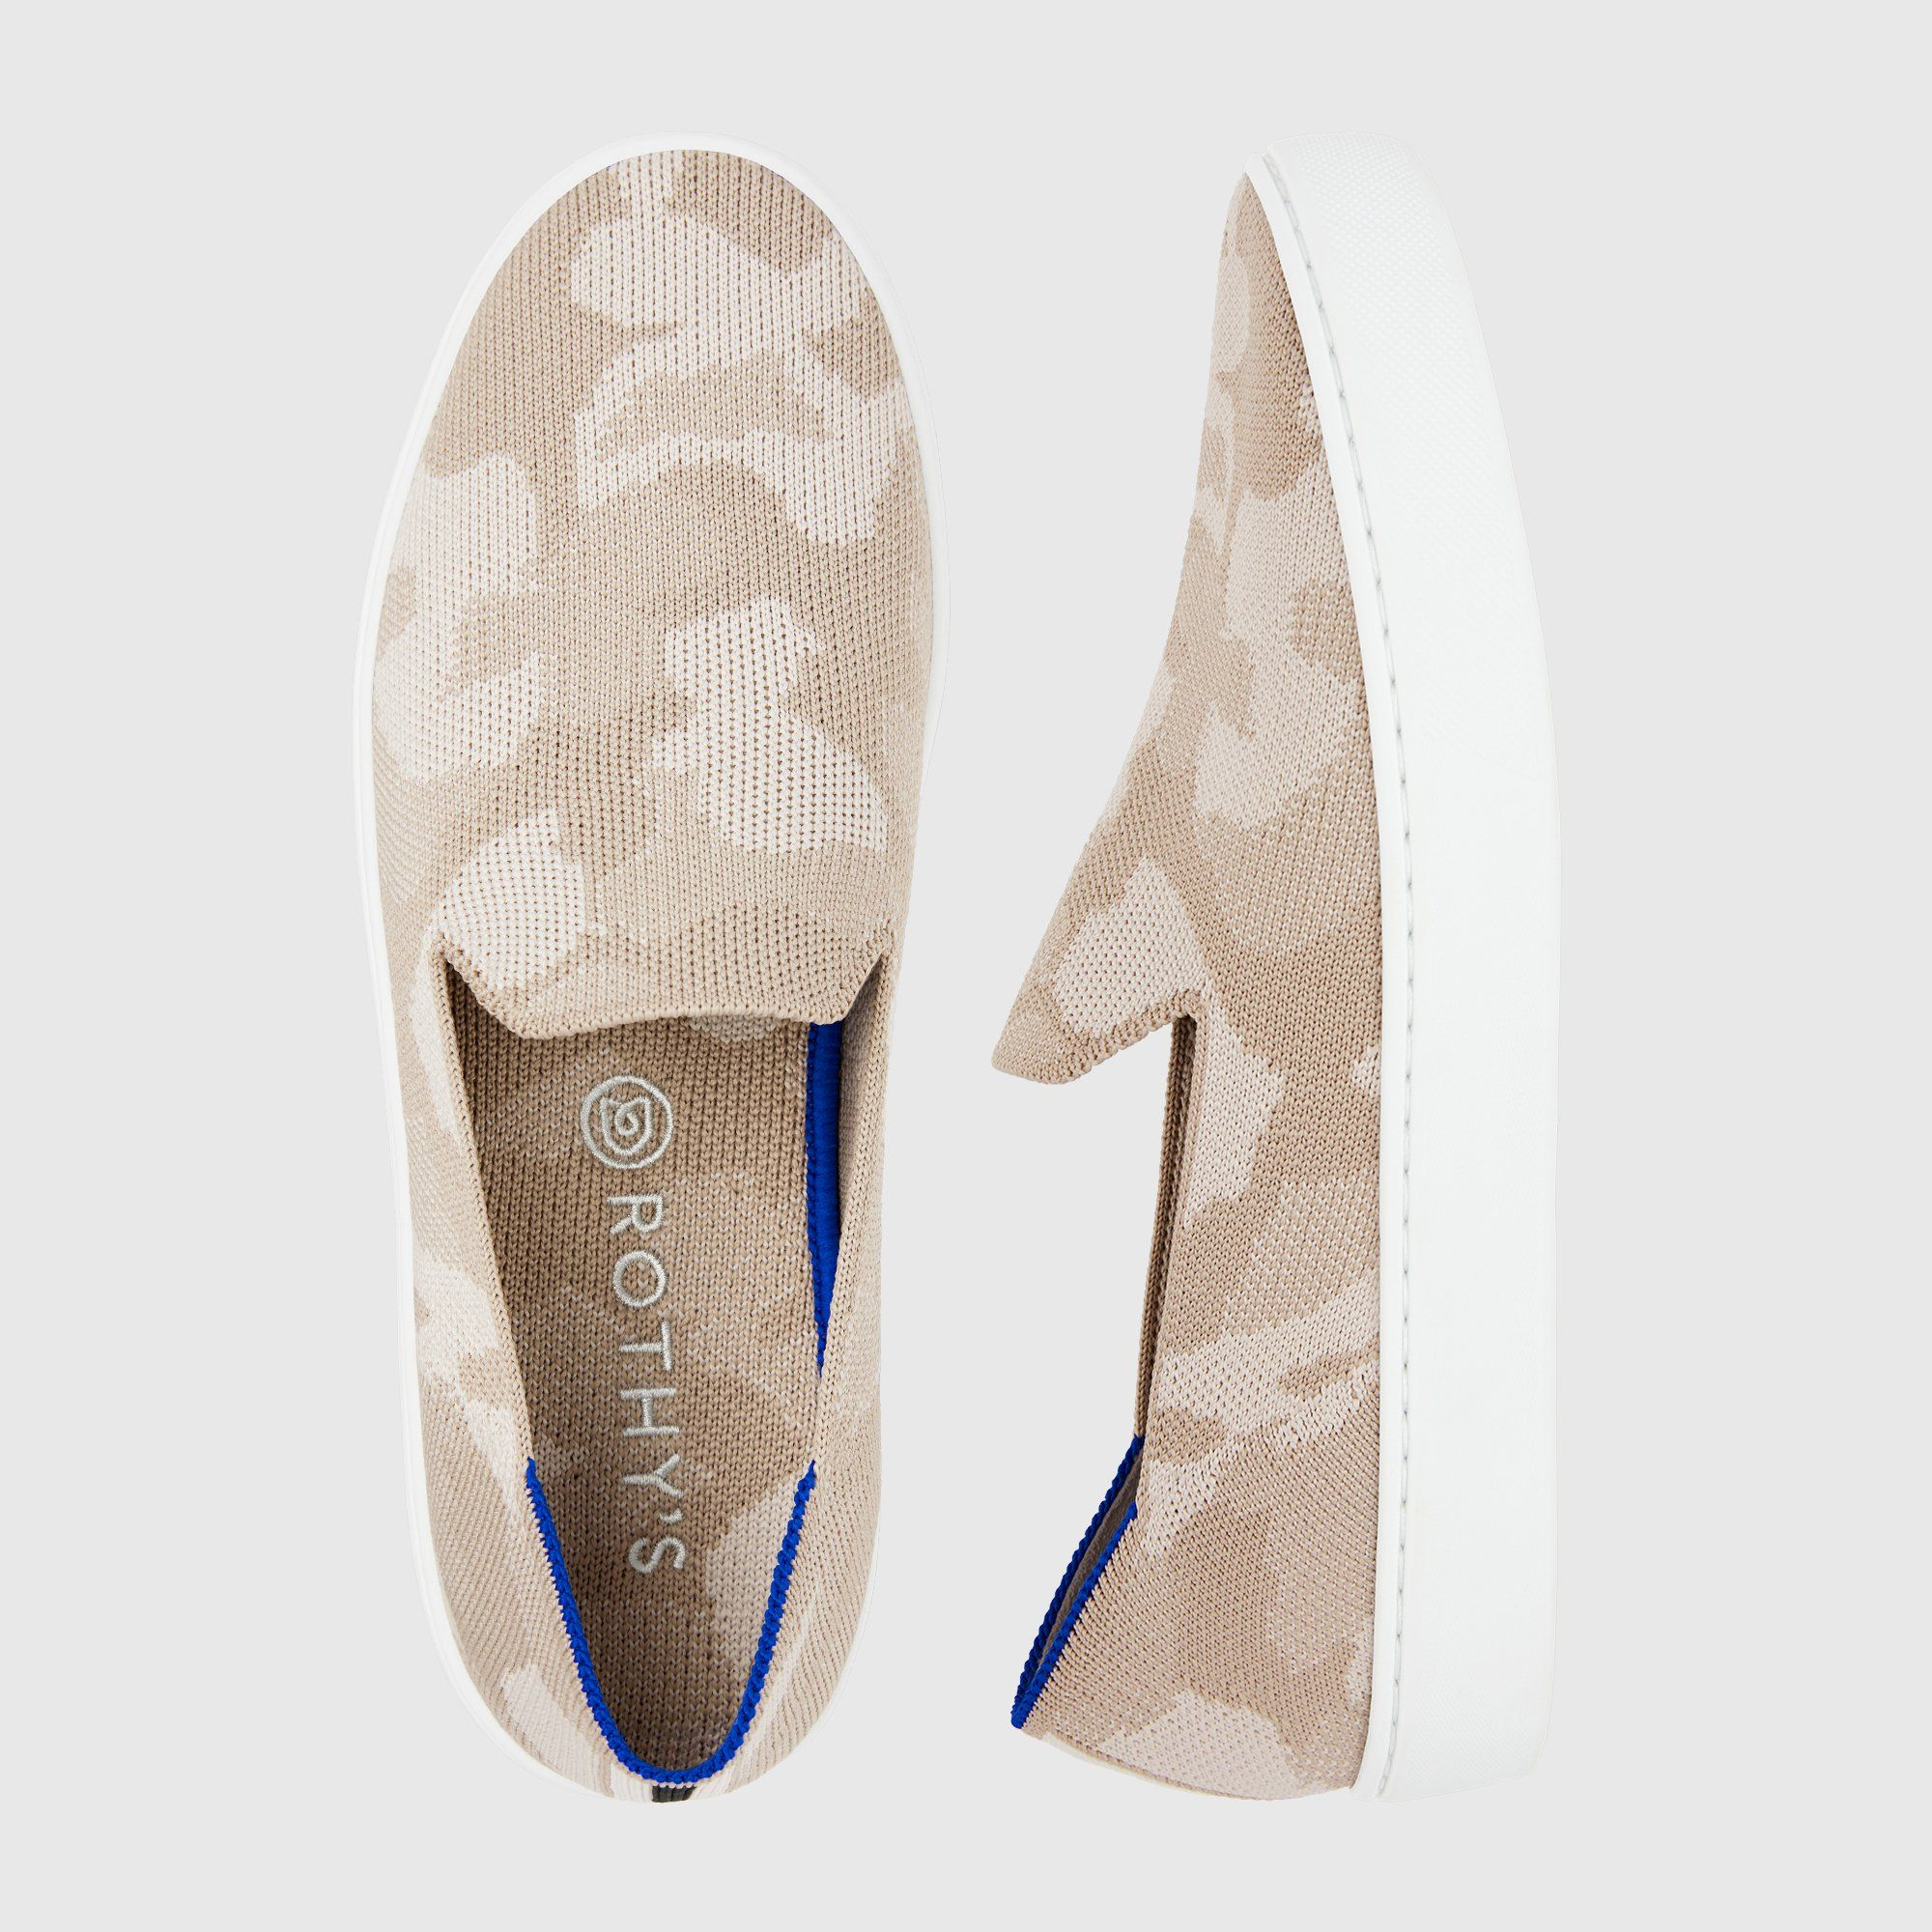 a2eee8178c3 Sand Camo – Rothy's | Shoes in 2019 | Sneakers, Pointed toe flats, Shoes